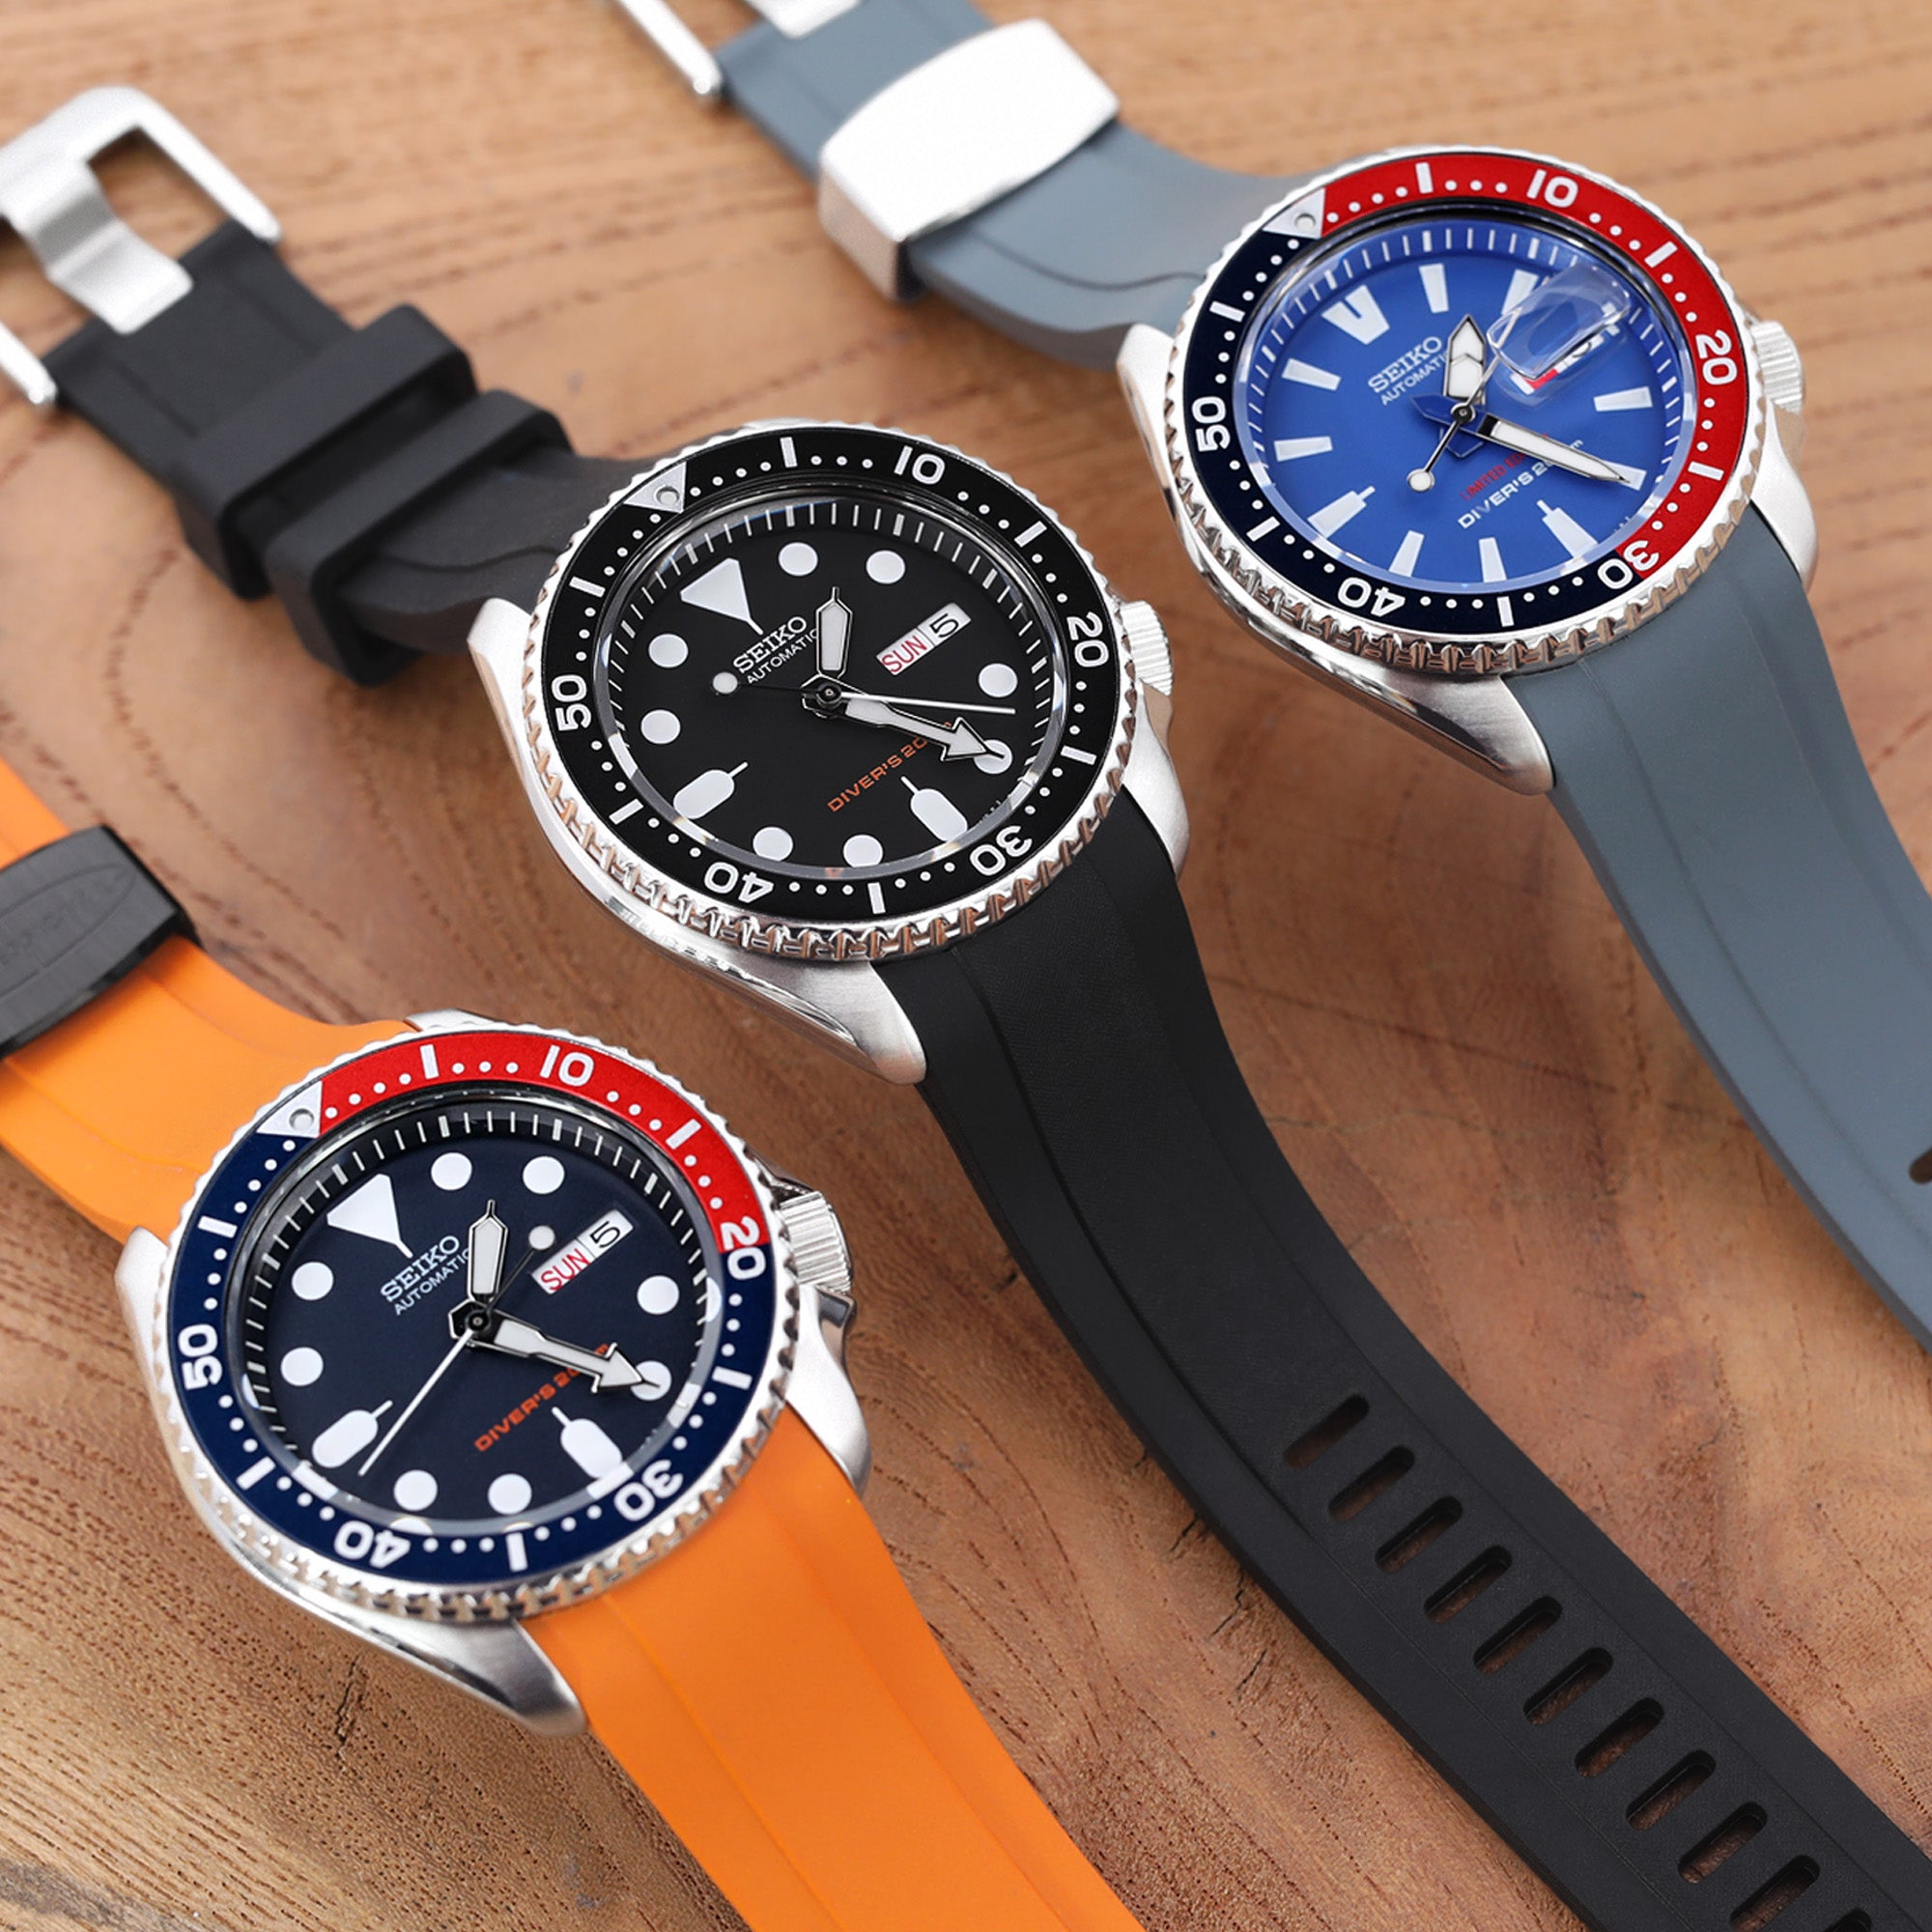 seiko skx007 rubber strap replacement by Crafter Blue